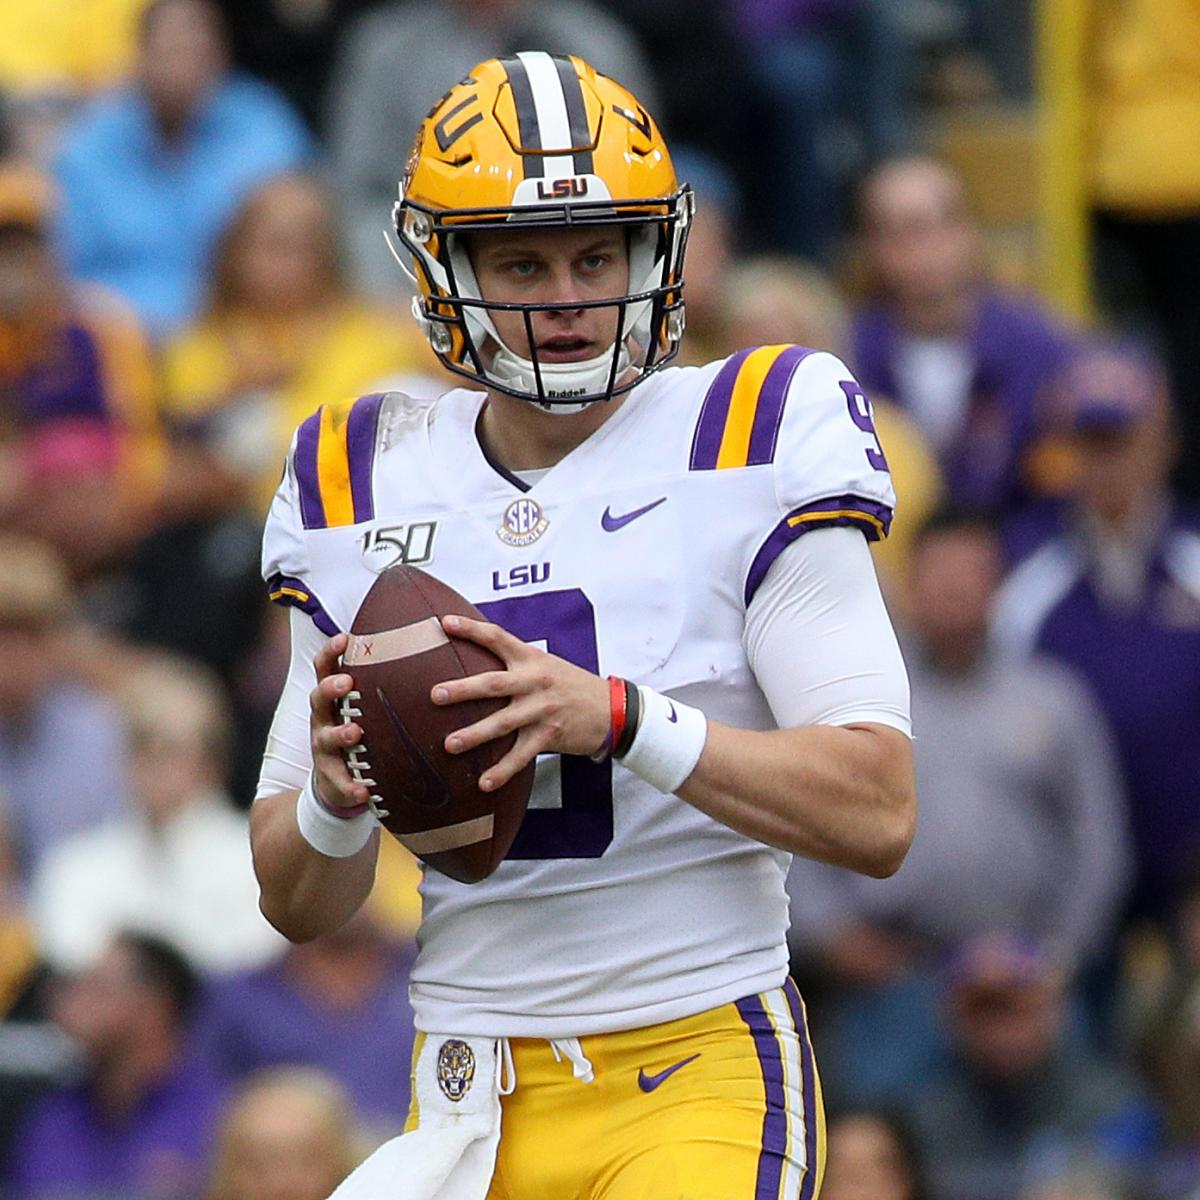 Ranking the 5 Best CFB Teams Ever Besides 2019 LSU